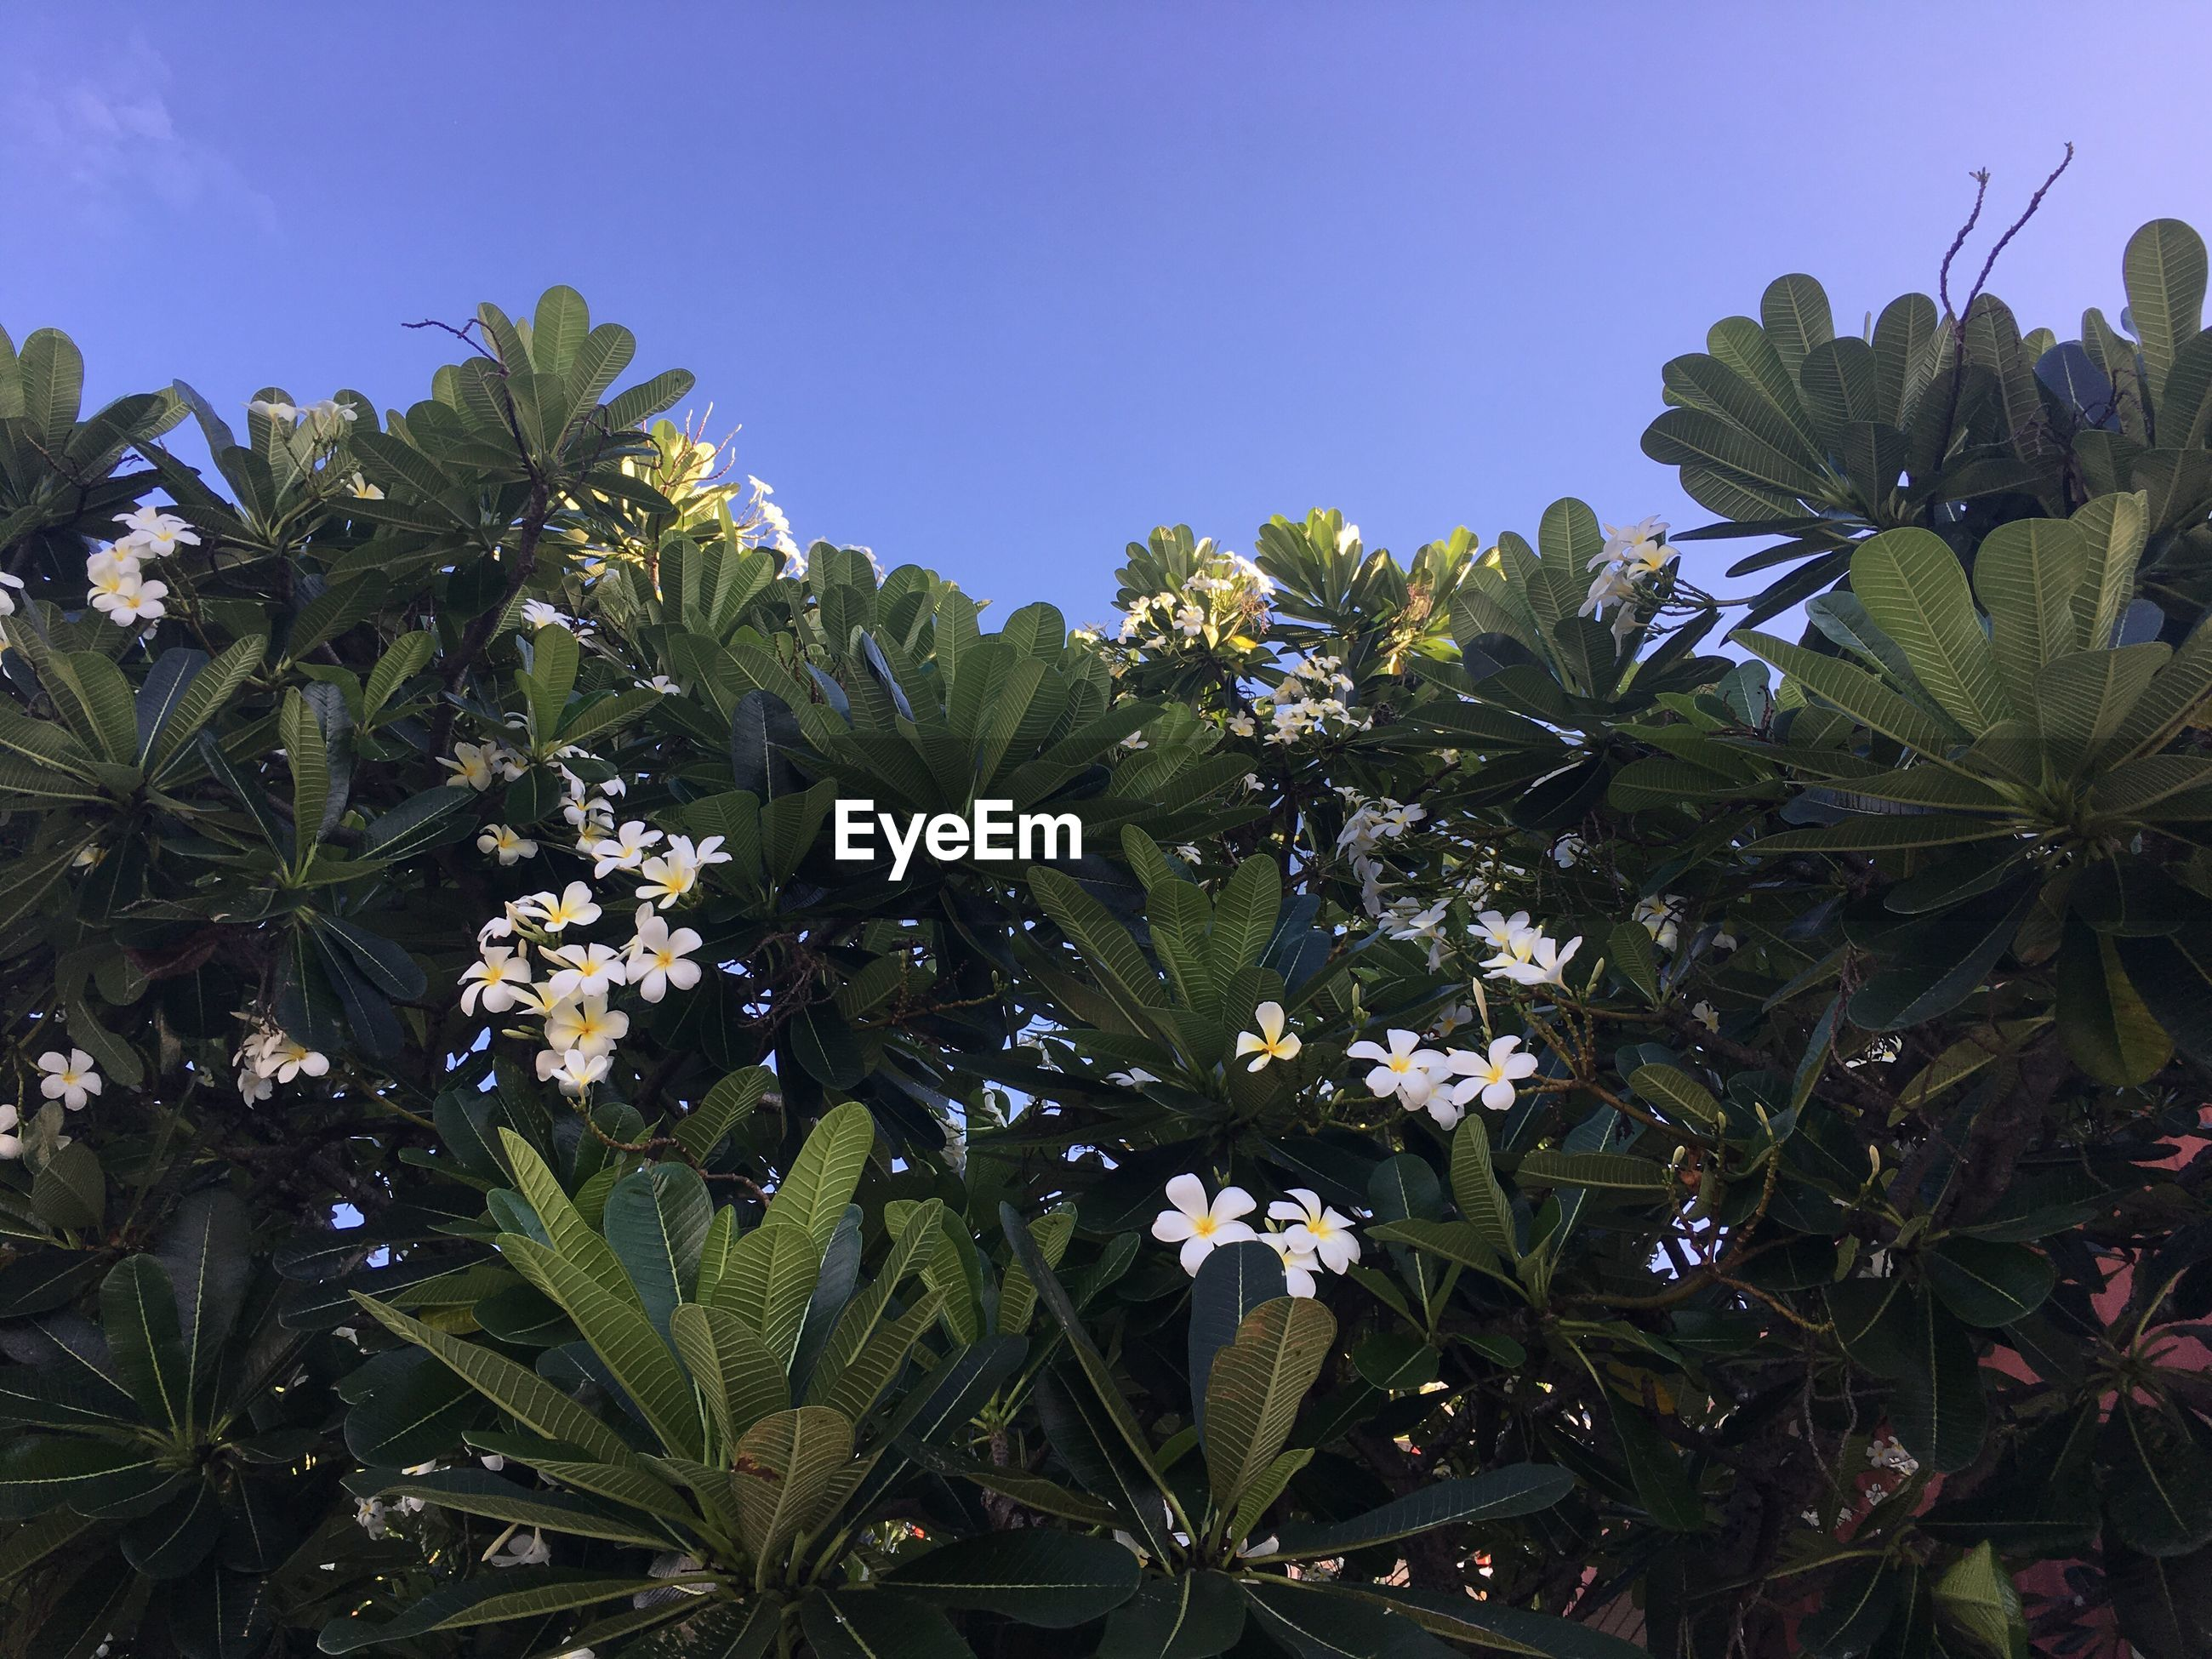 FLOWERS GROWING ON PLANT AGAINST CLEAR SKY